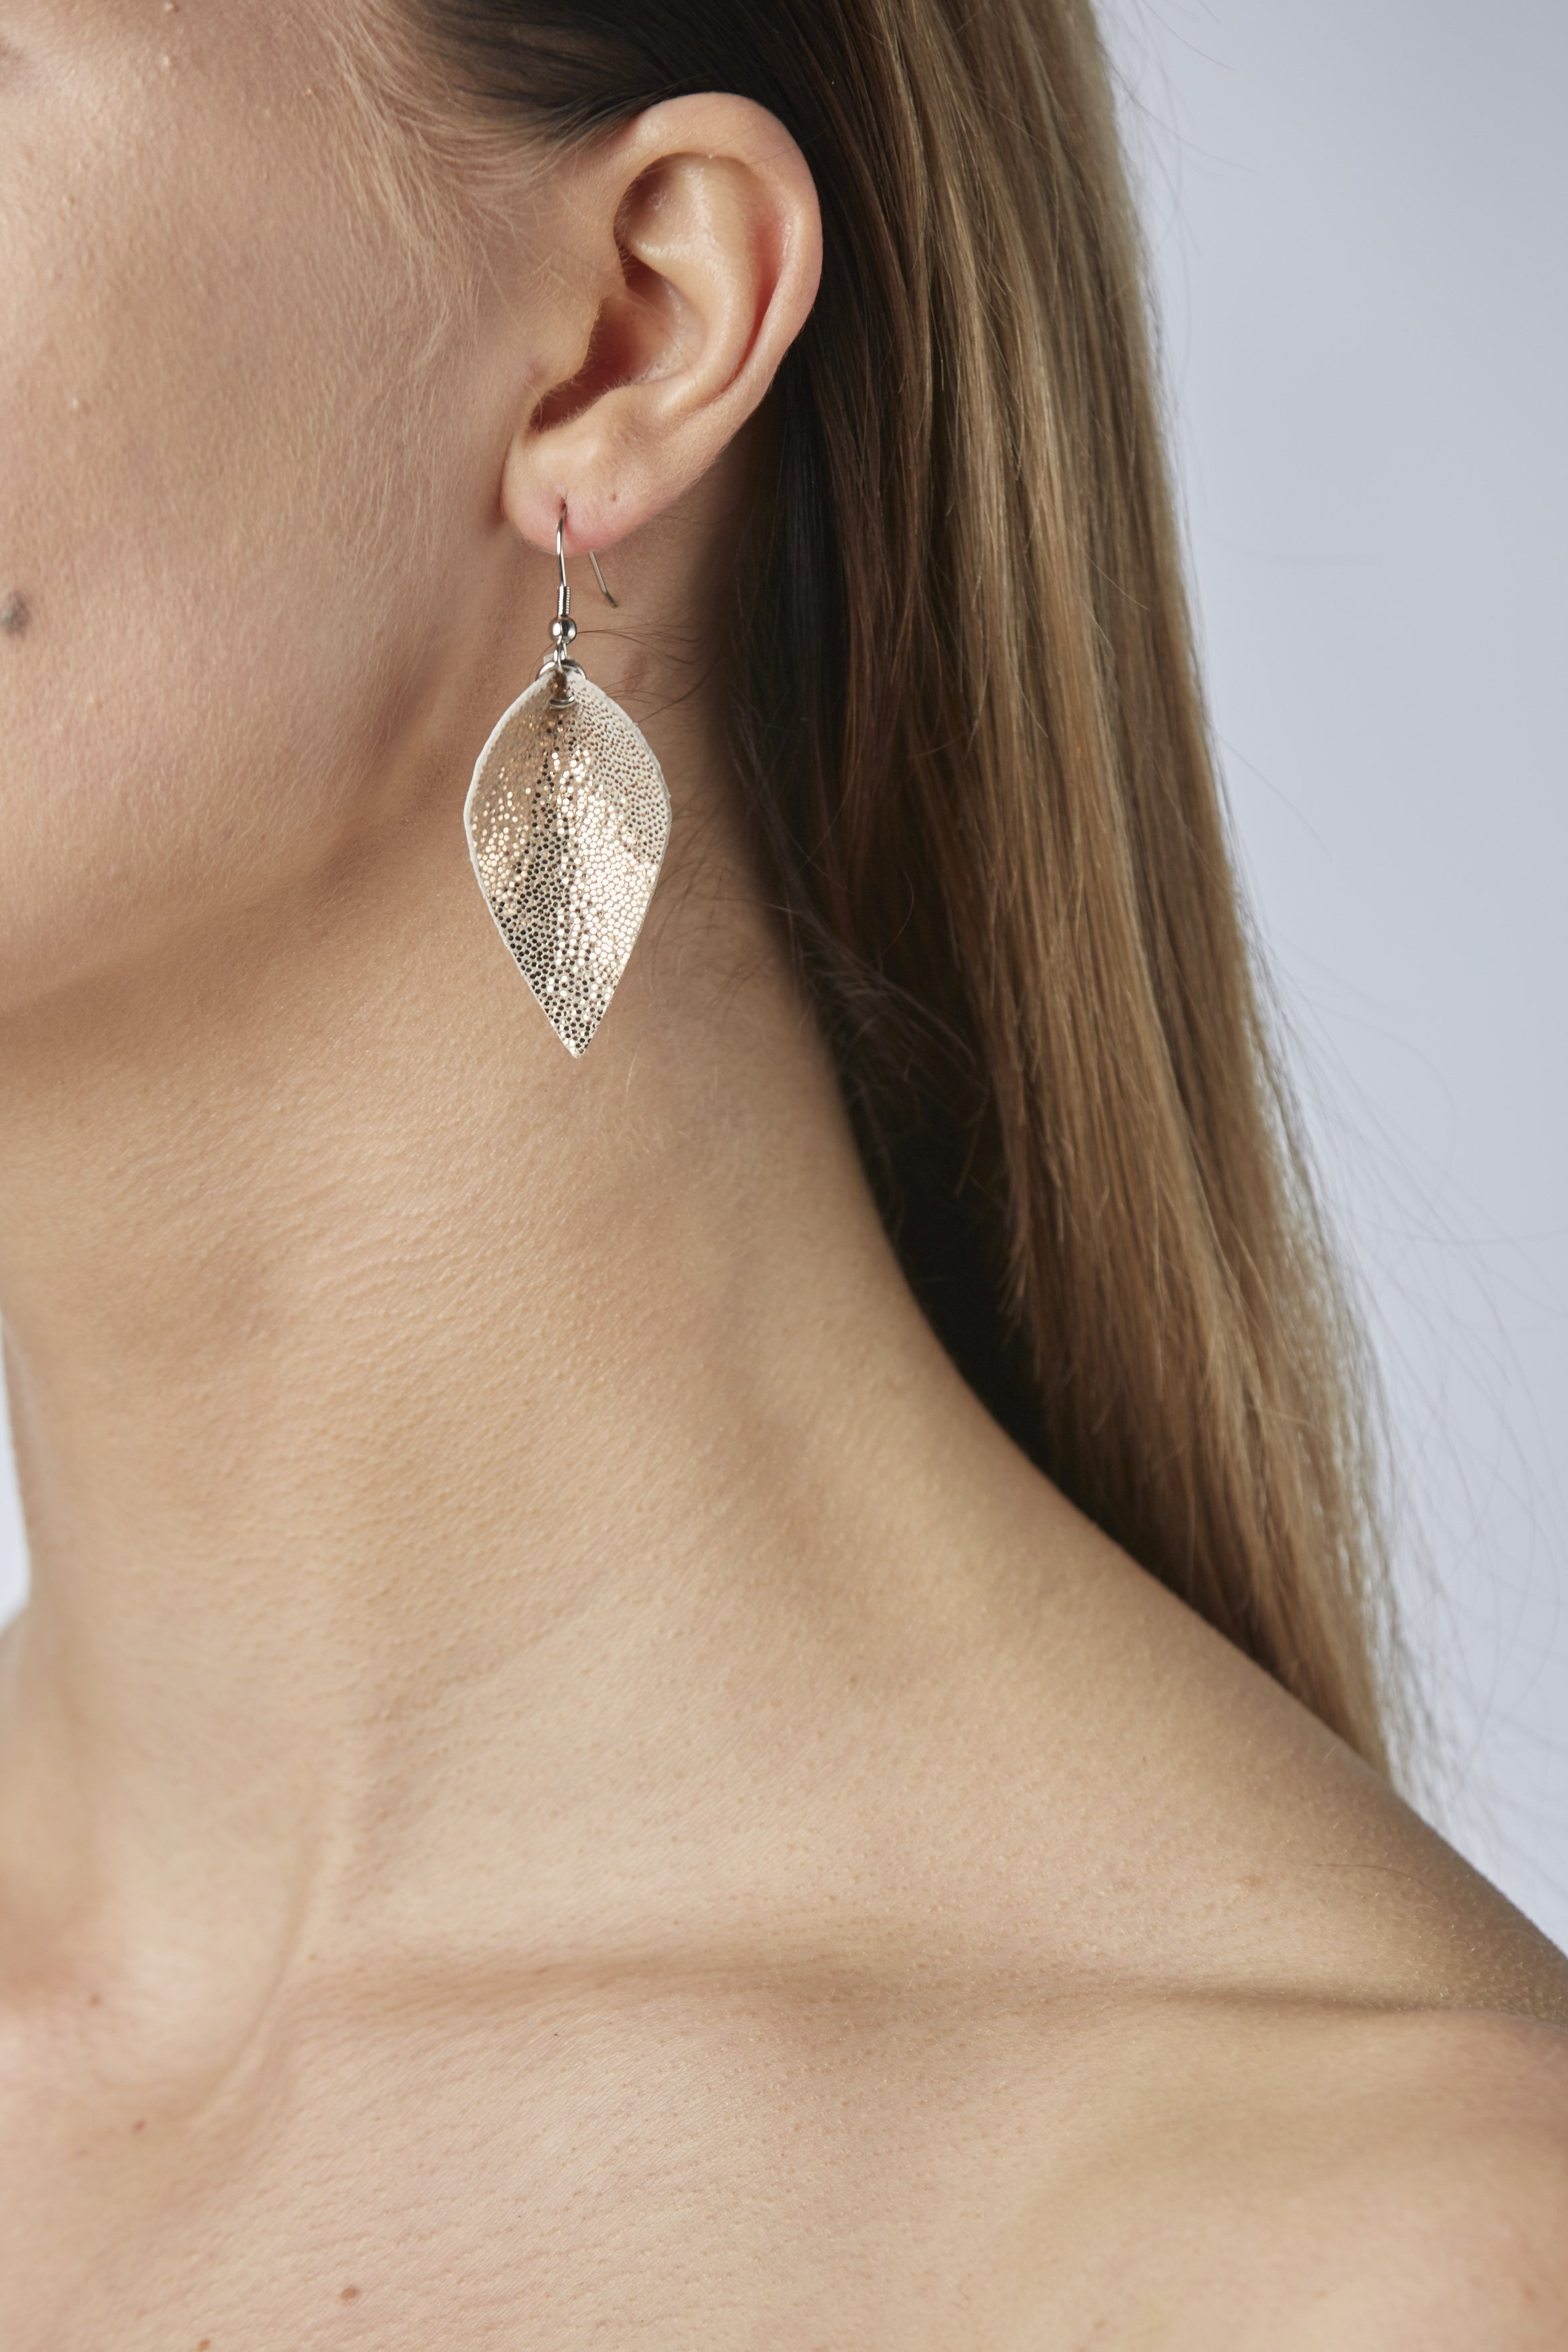 Lumme Petite earrings in glitter gold are inspired by the most beautiful decoration of Finland´s lakes, the water lily – Lumme.These lightweight exclusive Italian goat leather made elegant earrings size is ideal for everyone to wear.